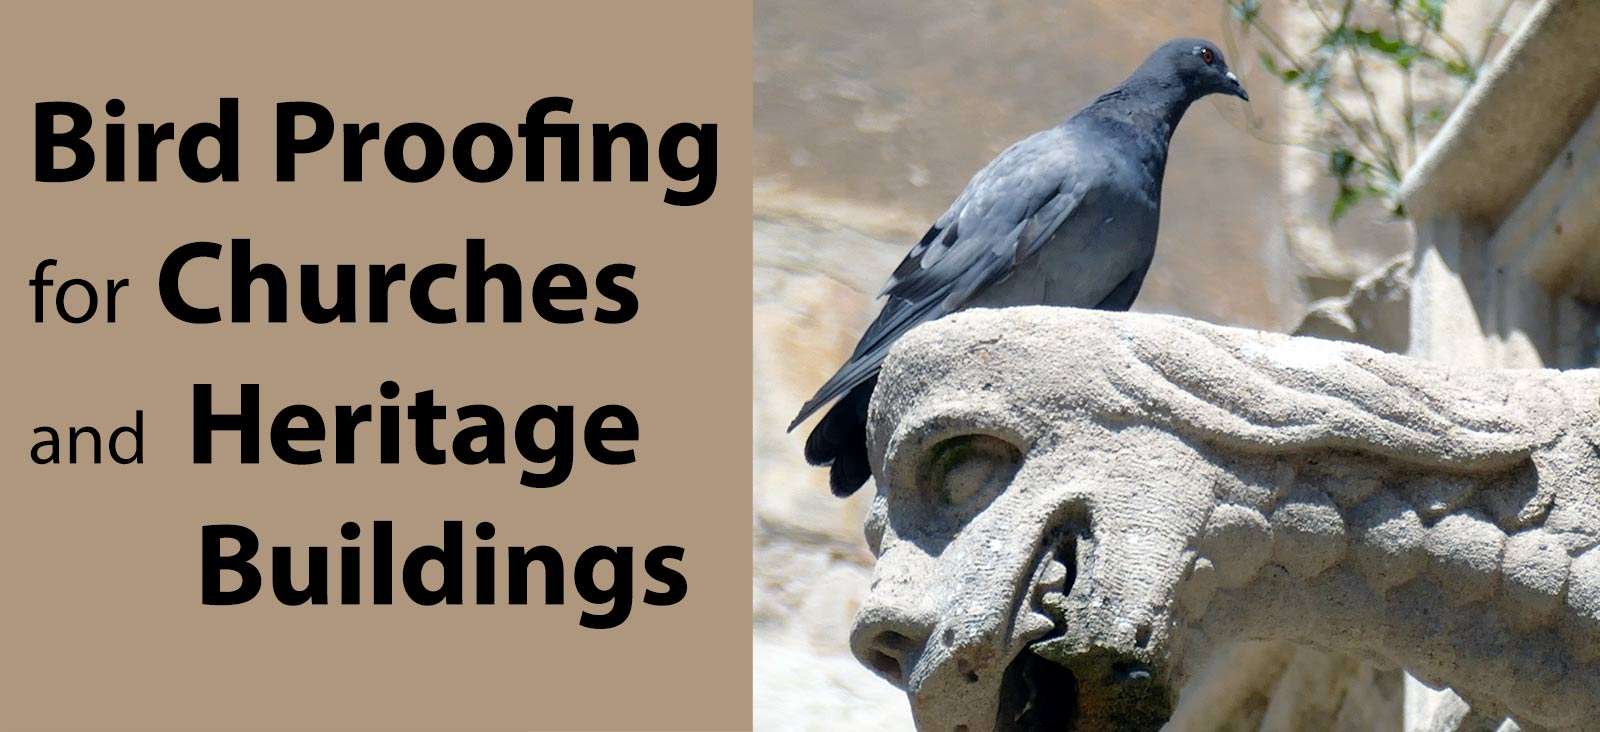 Bird Proofing Churches Priories Cathedrals And Historic